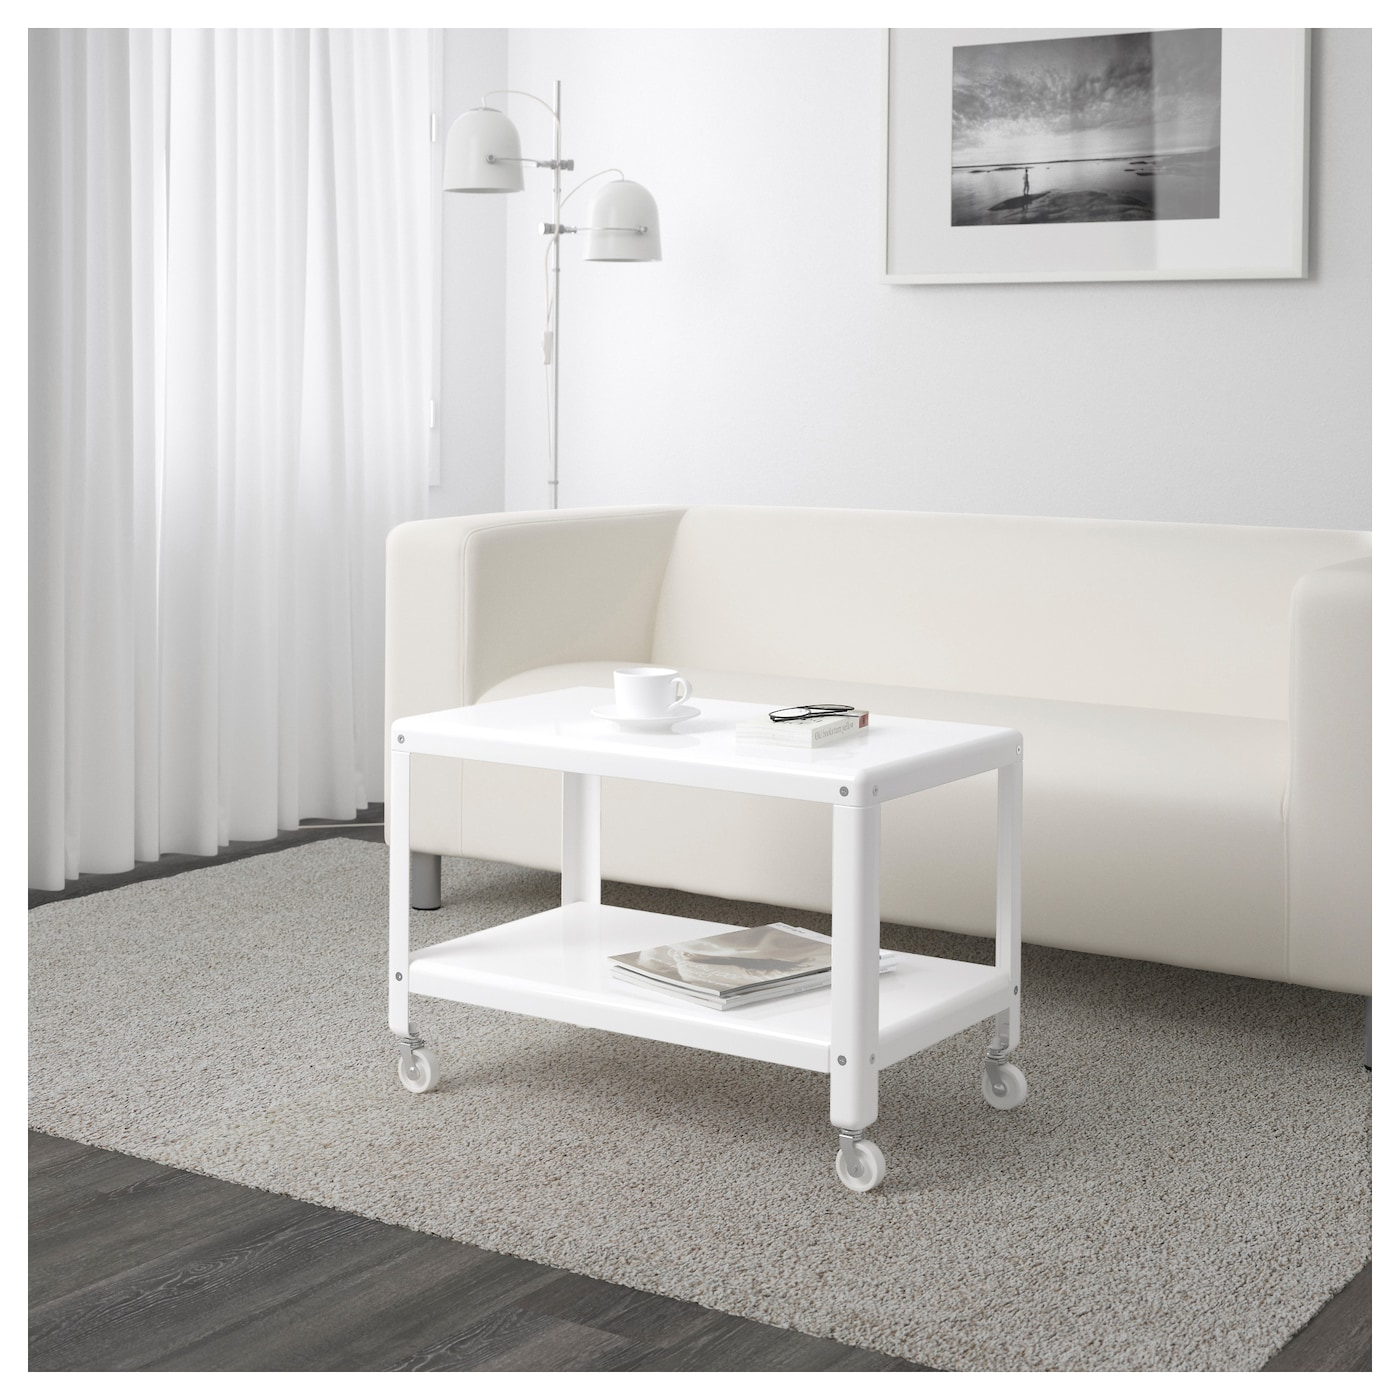 ikea ps 2012 coffee table white 70x42 cm ikea. Black Bedroom Furniture Sets. Home Design Ideas